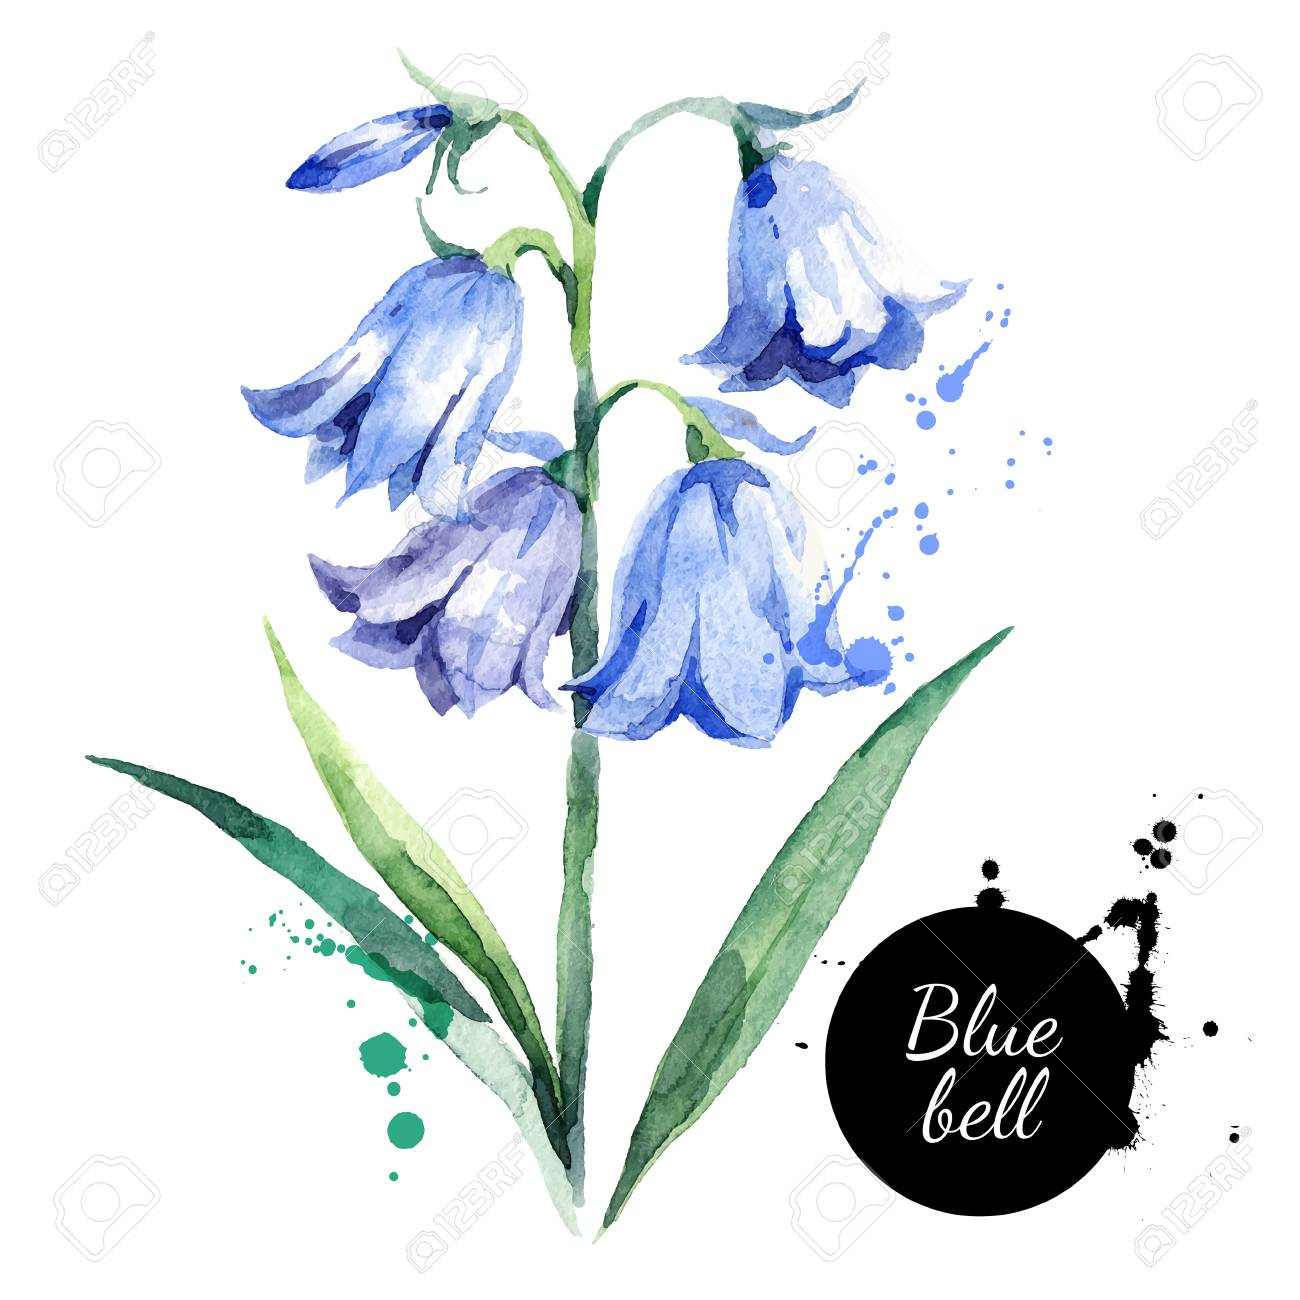 Hand drawn watercolor bluebell flower illustration. Vector painted...